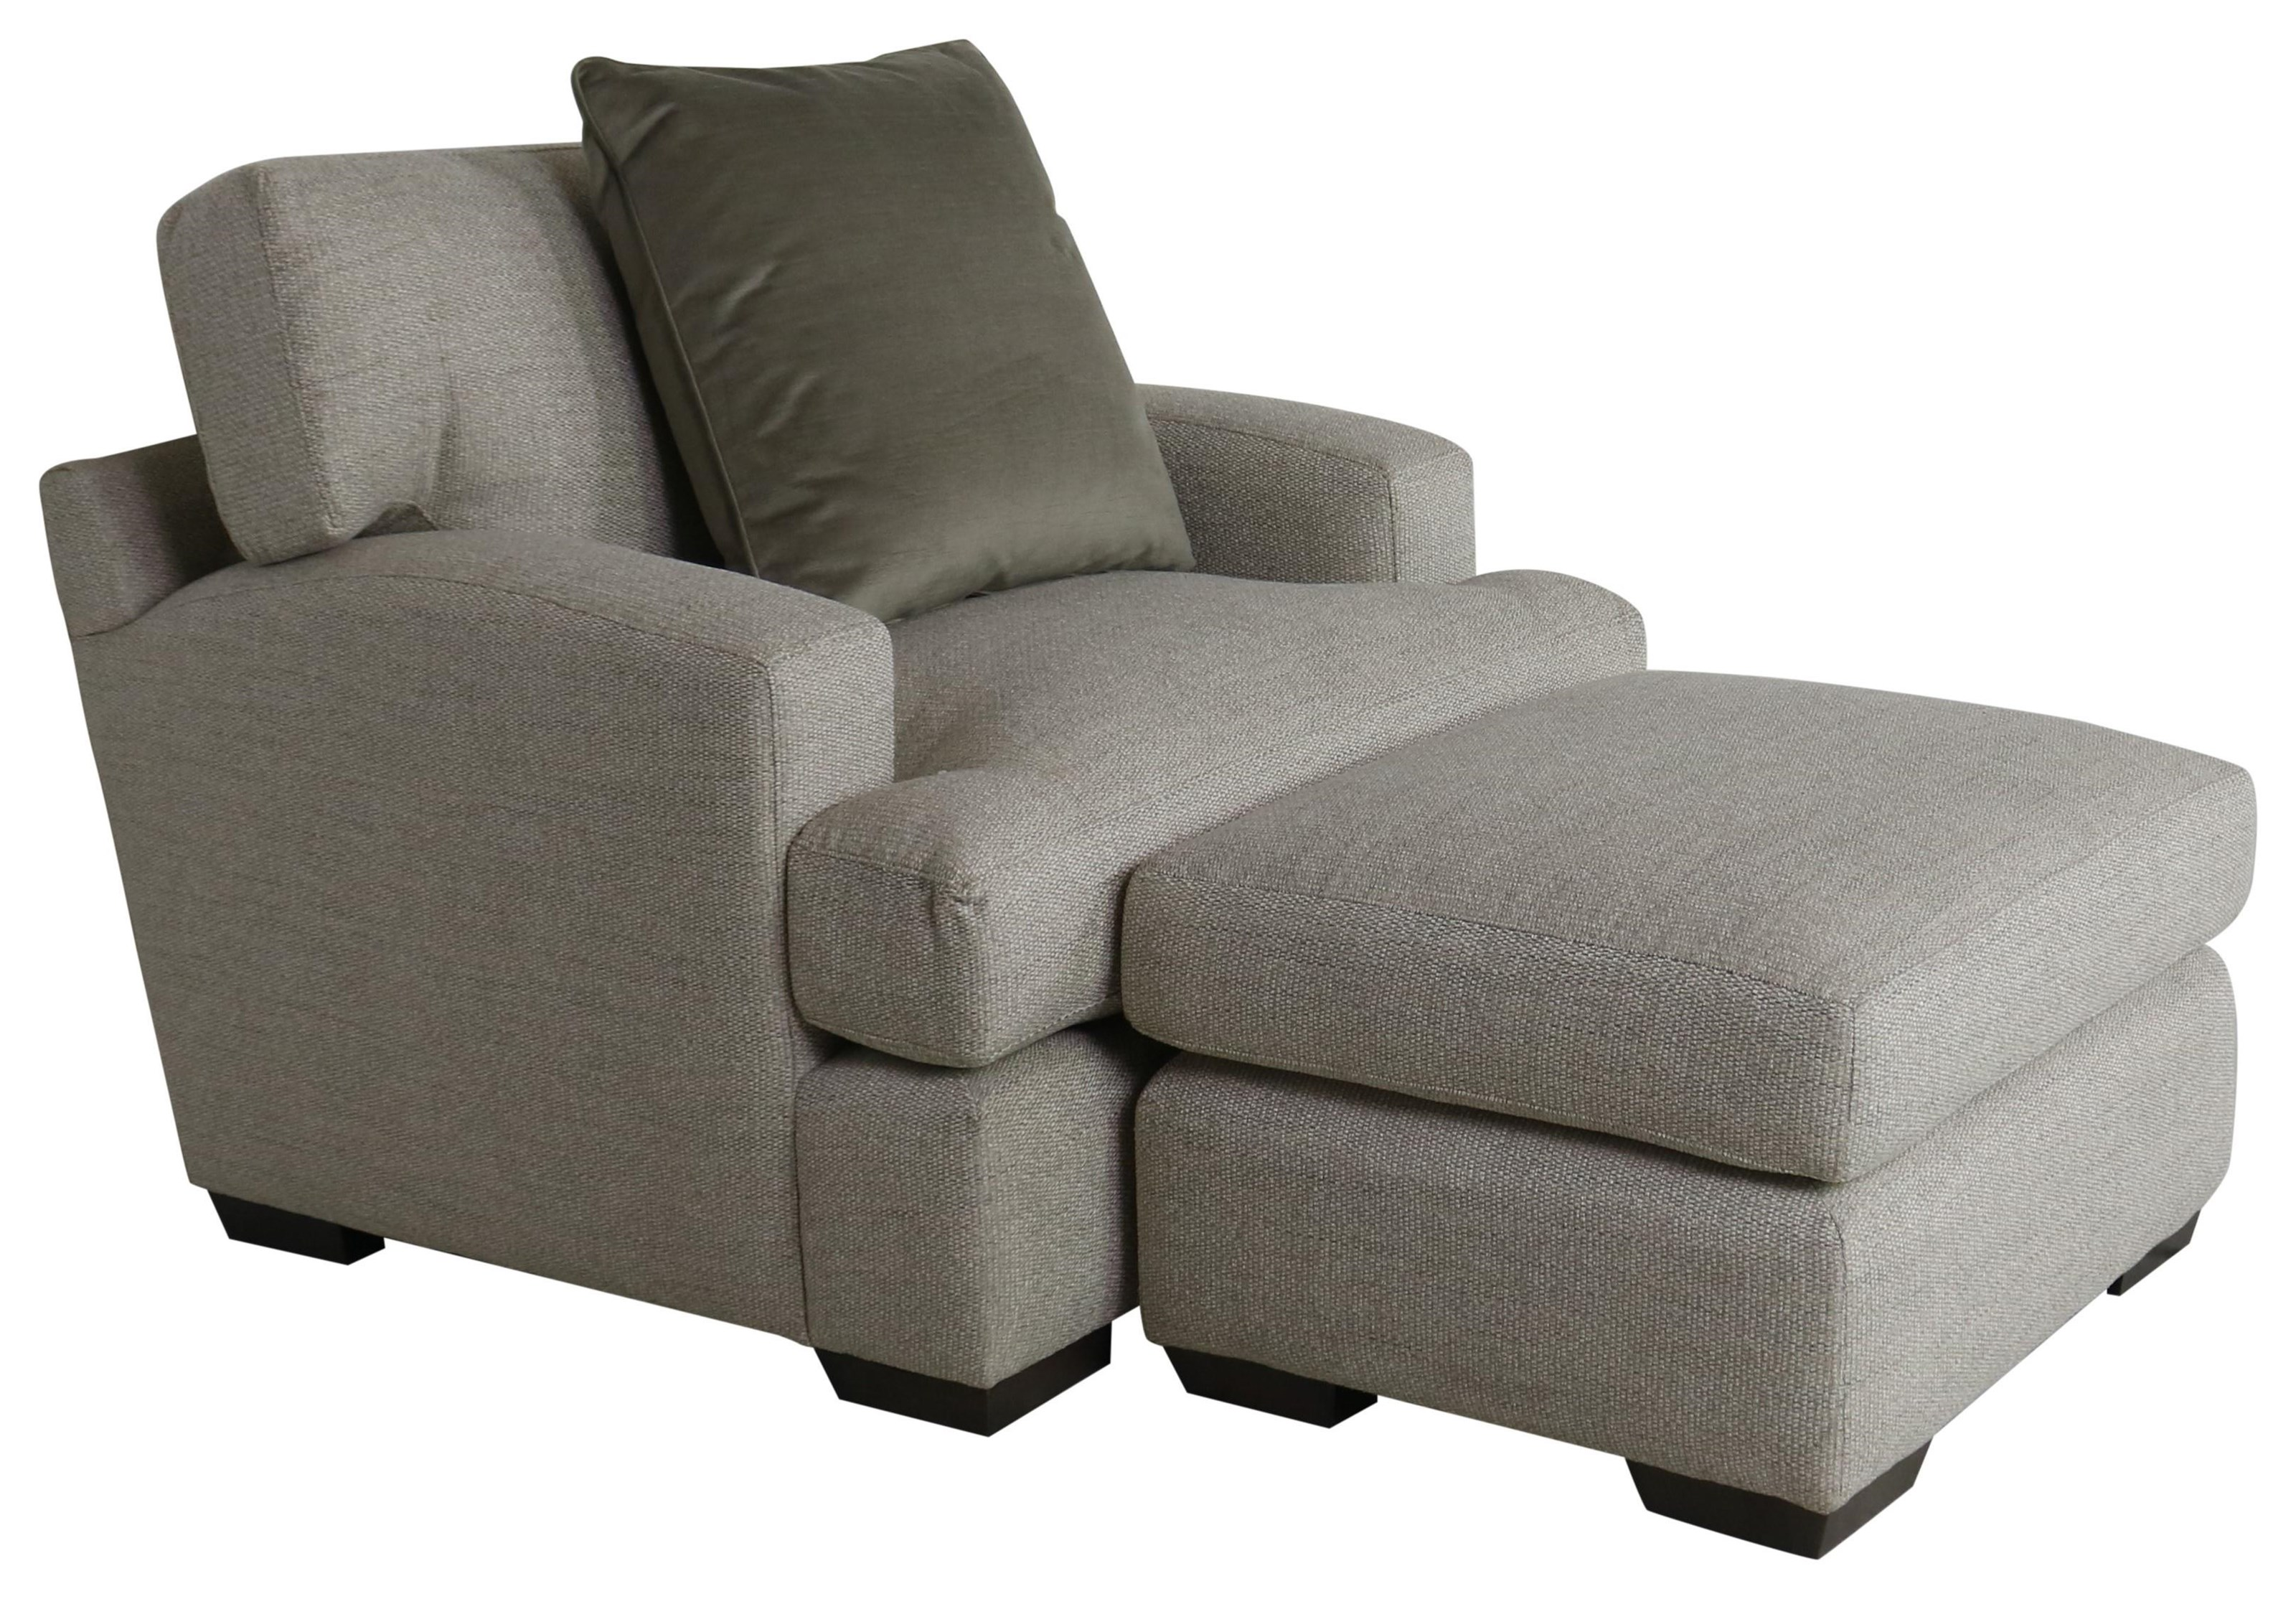 COZI LIFE Chair and Ottoman by Cozi Life Upholstery at Sprintz Furniture